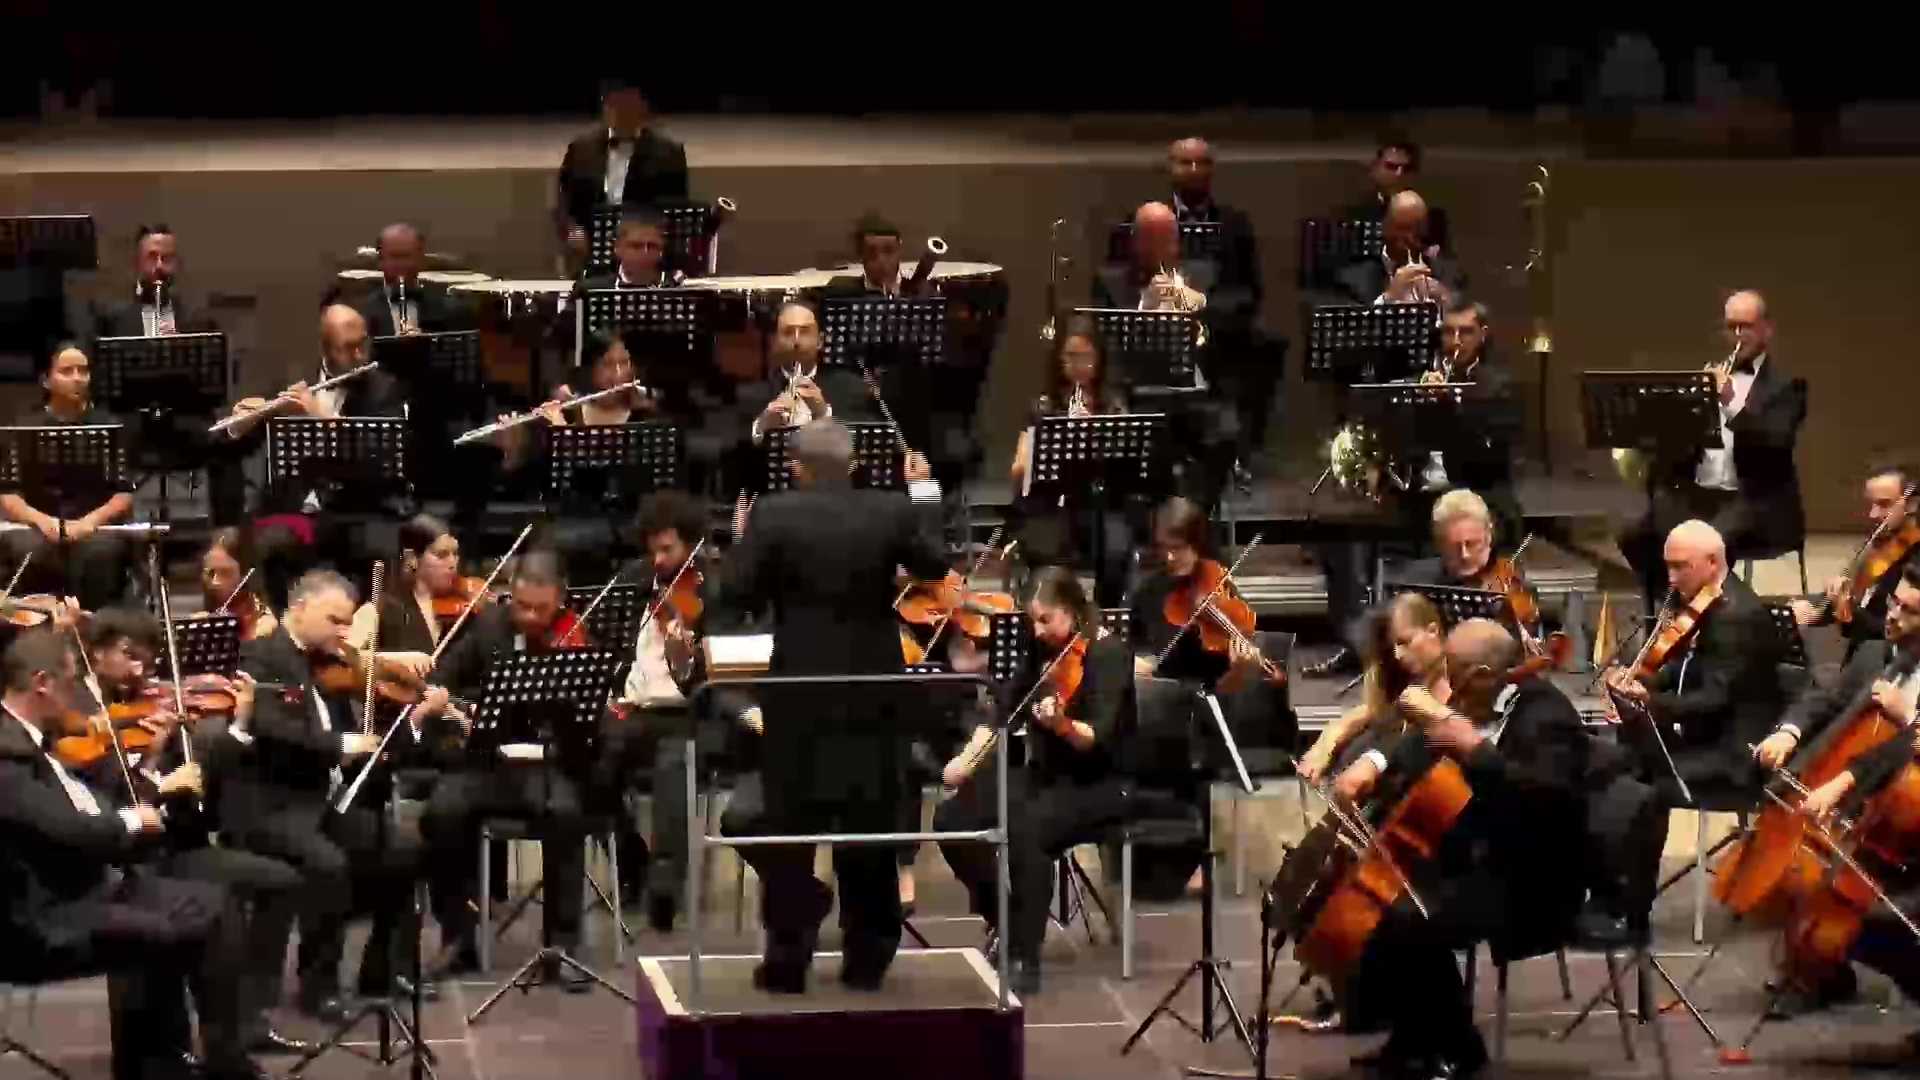 Concierto OST - Mendelssohn y Beethoven